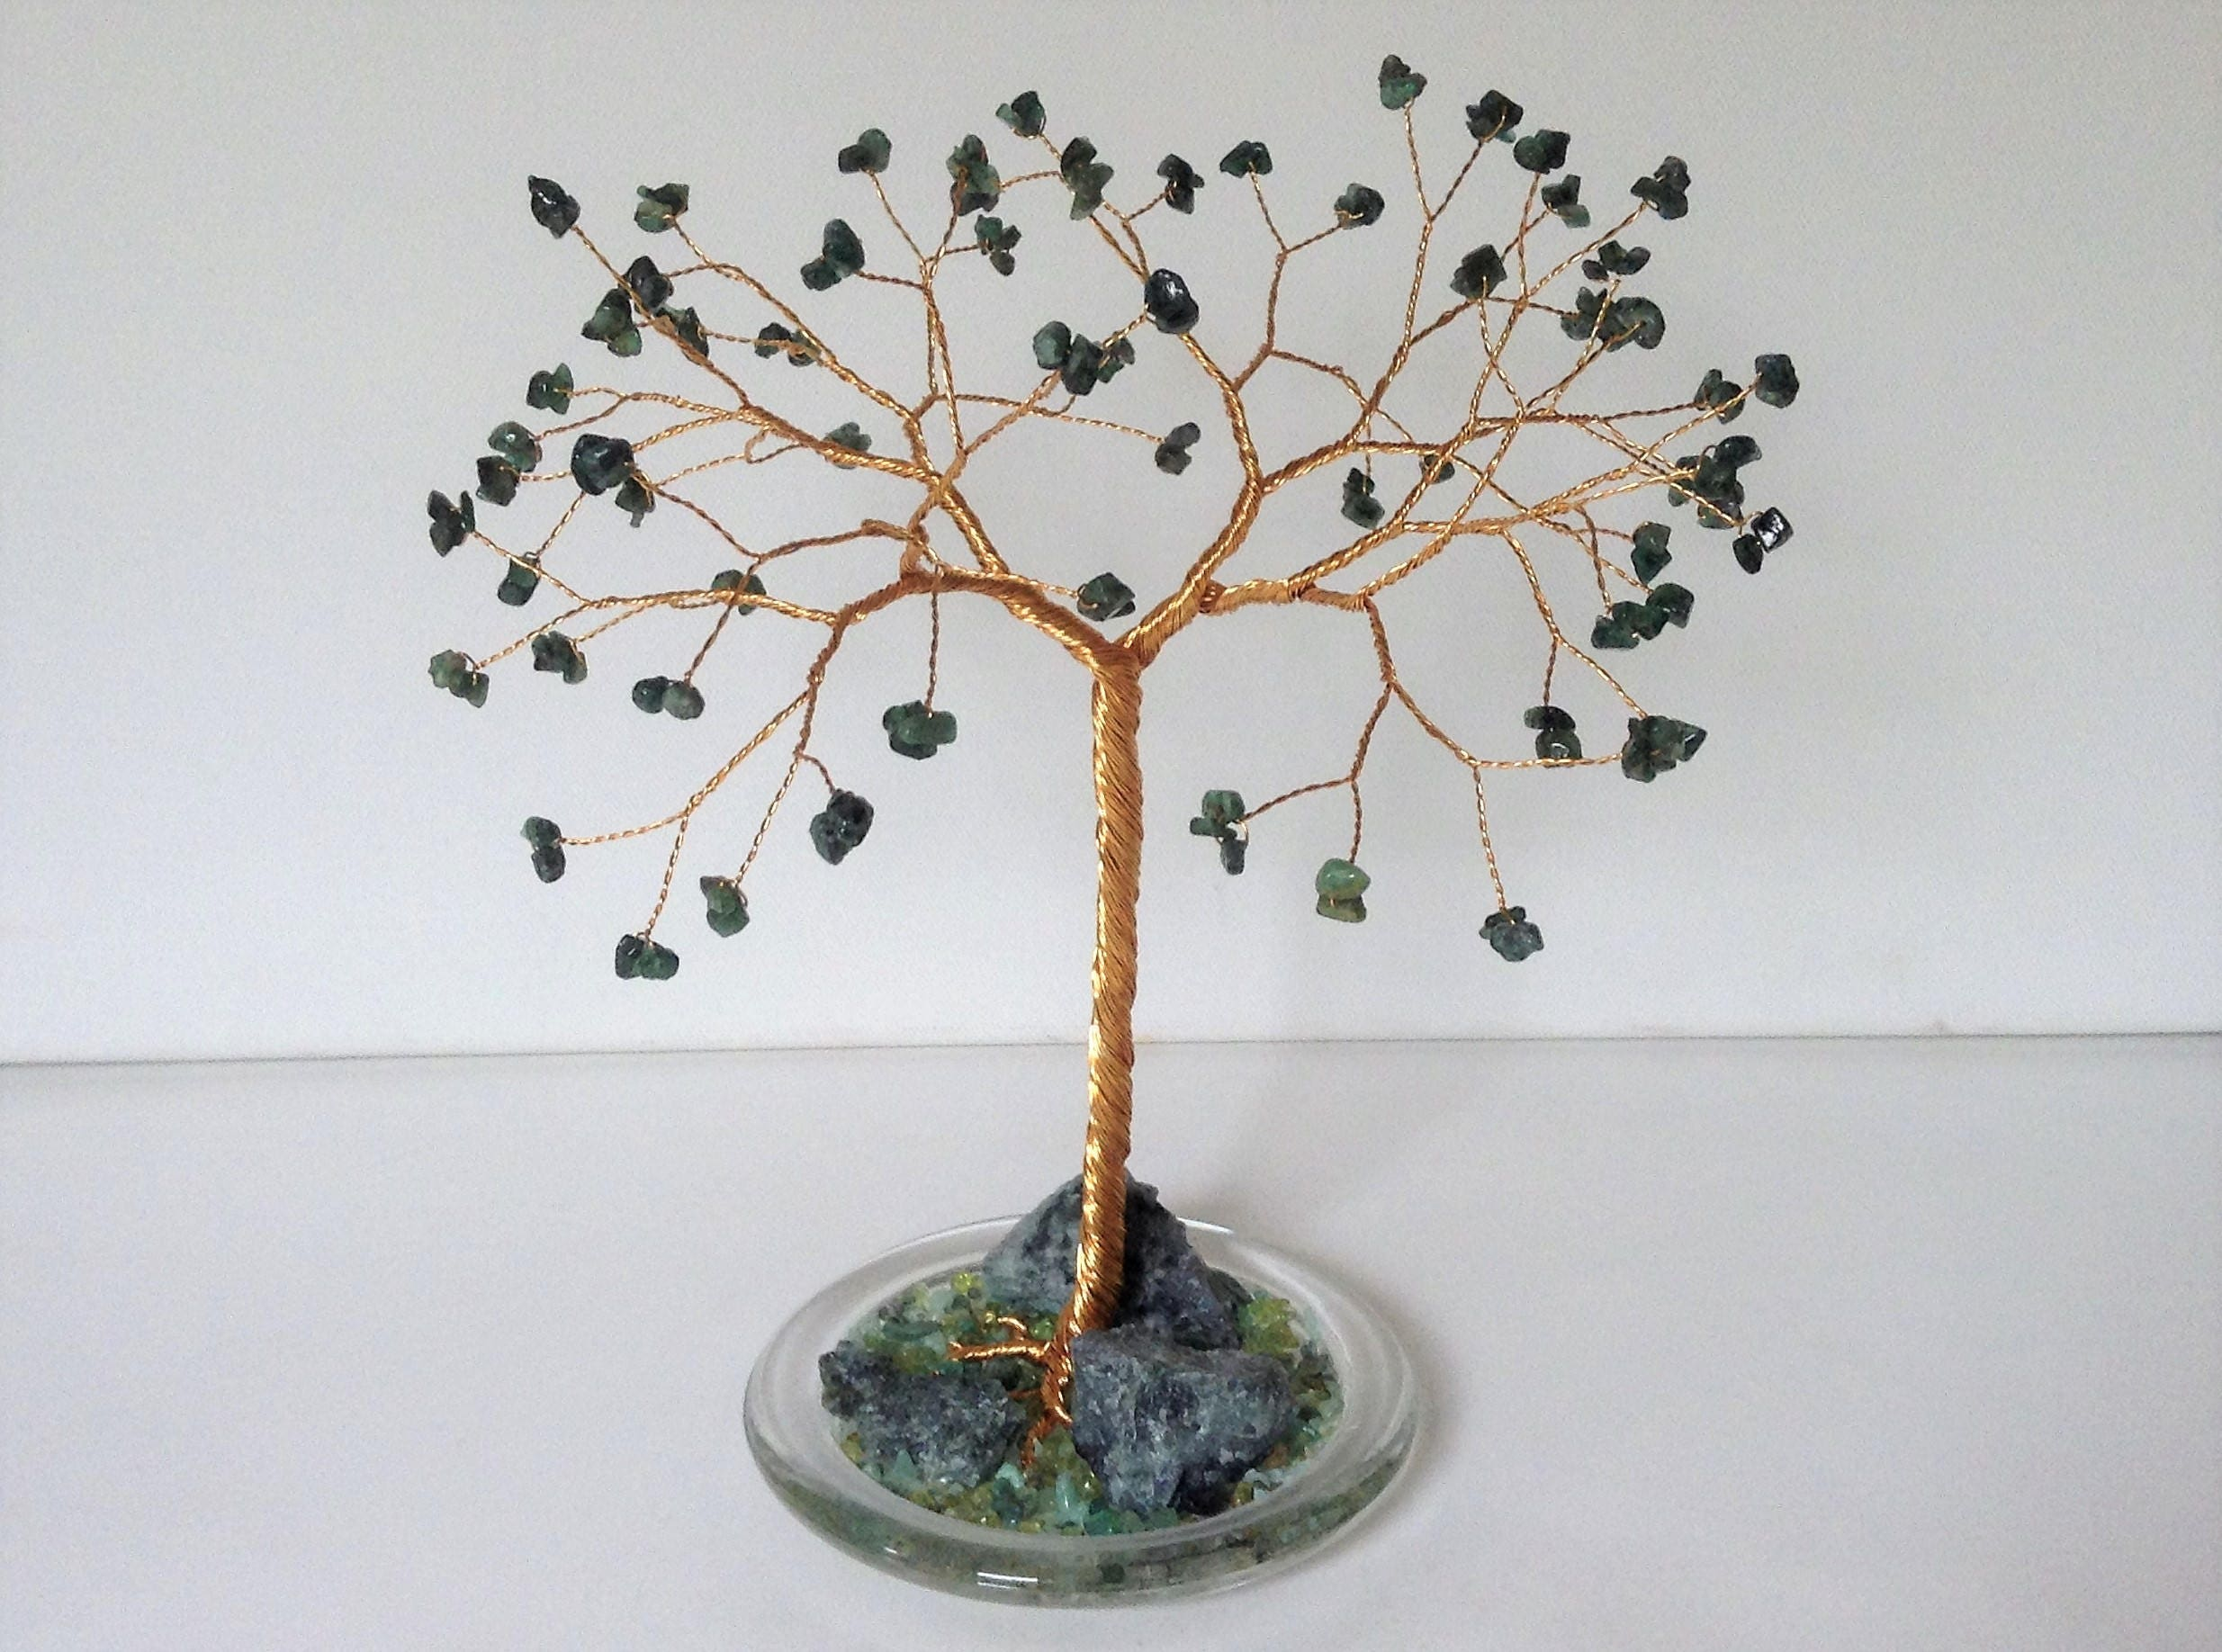 55th Wedding Anniversary Gift Ideas For Parents: 55th Wedding Anniversary Gift.Emerald Gemstone Tree Sculpture